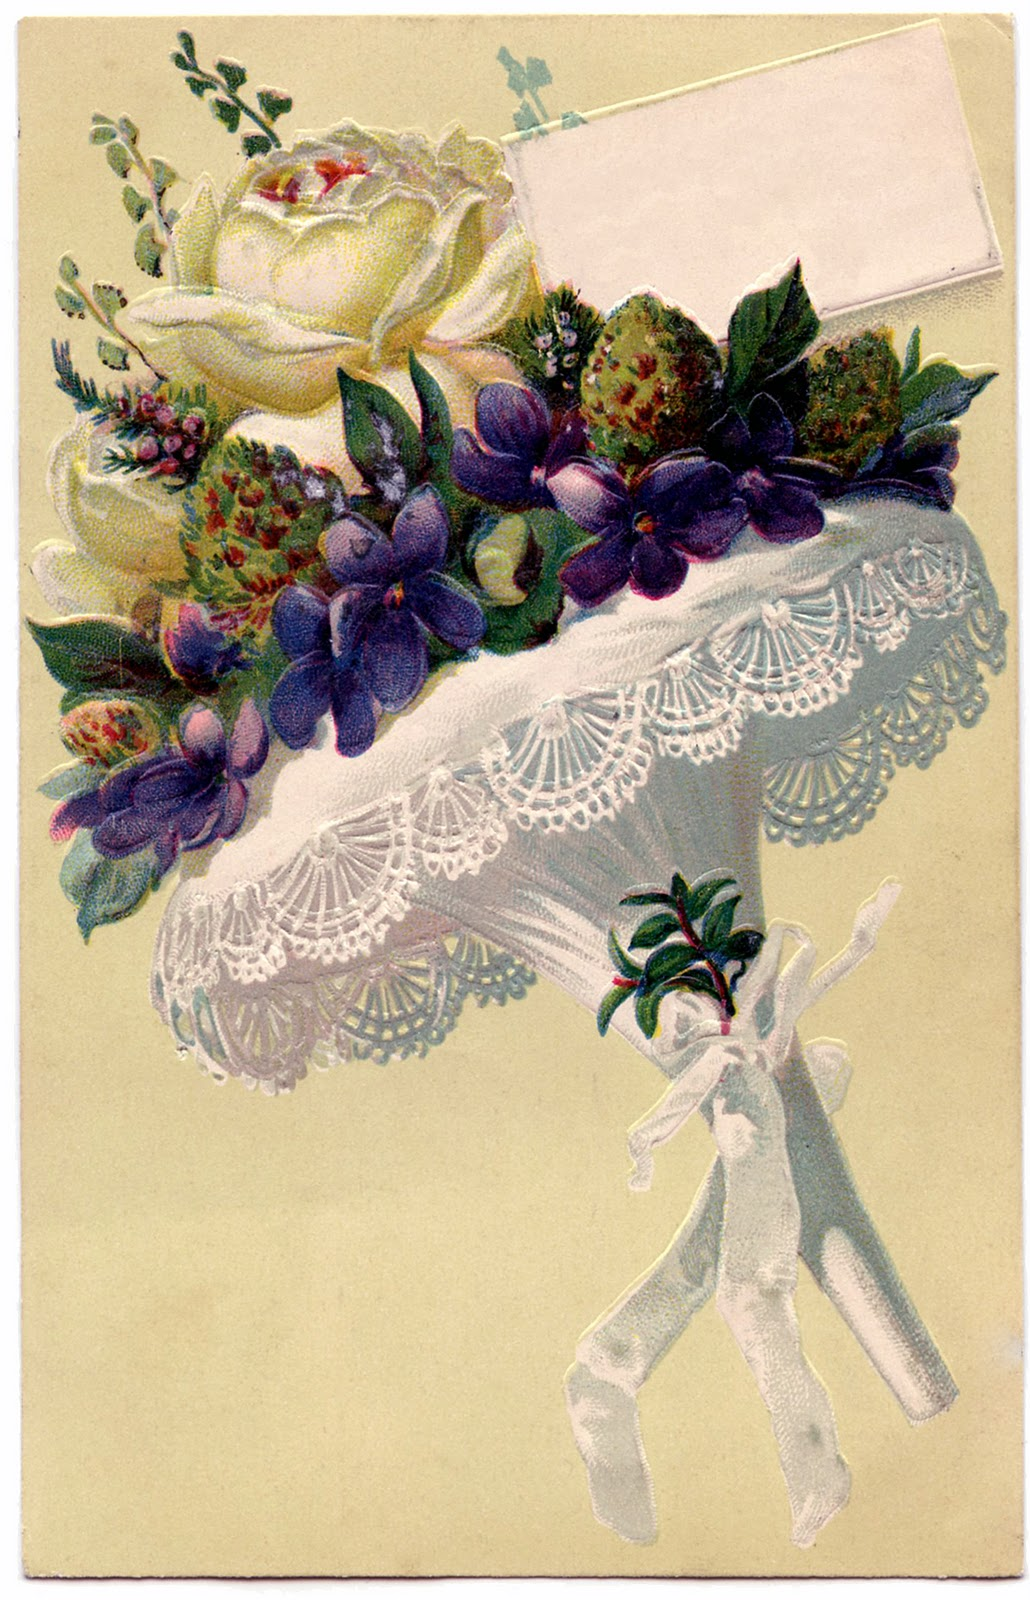 Victorian Graphic - French Flower Bouquet with Lace - The Graphics Fairy